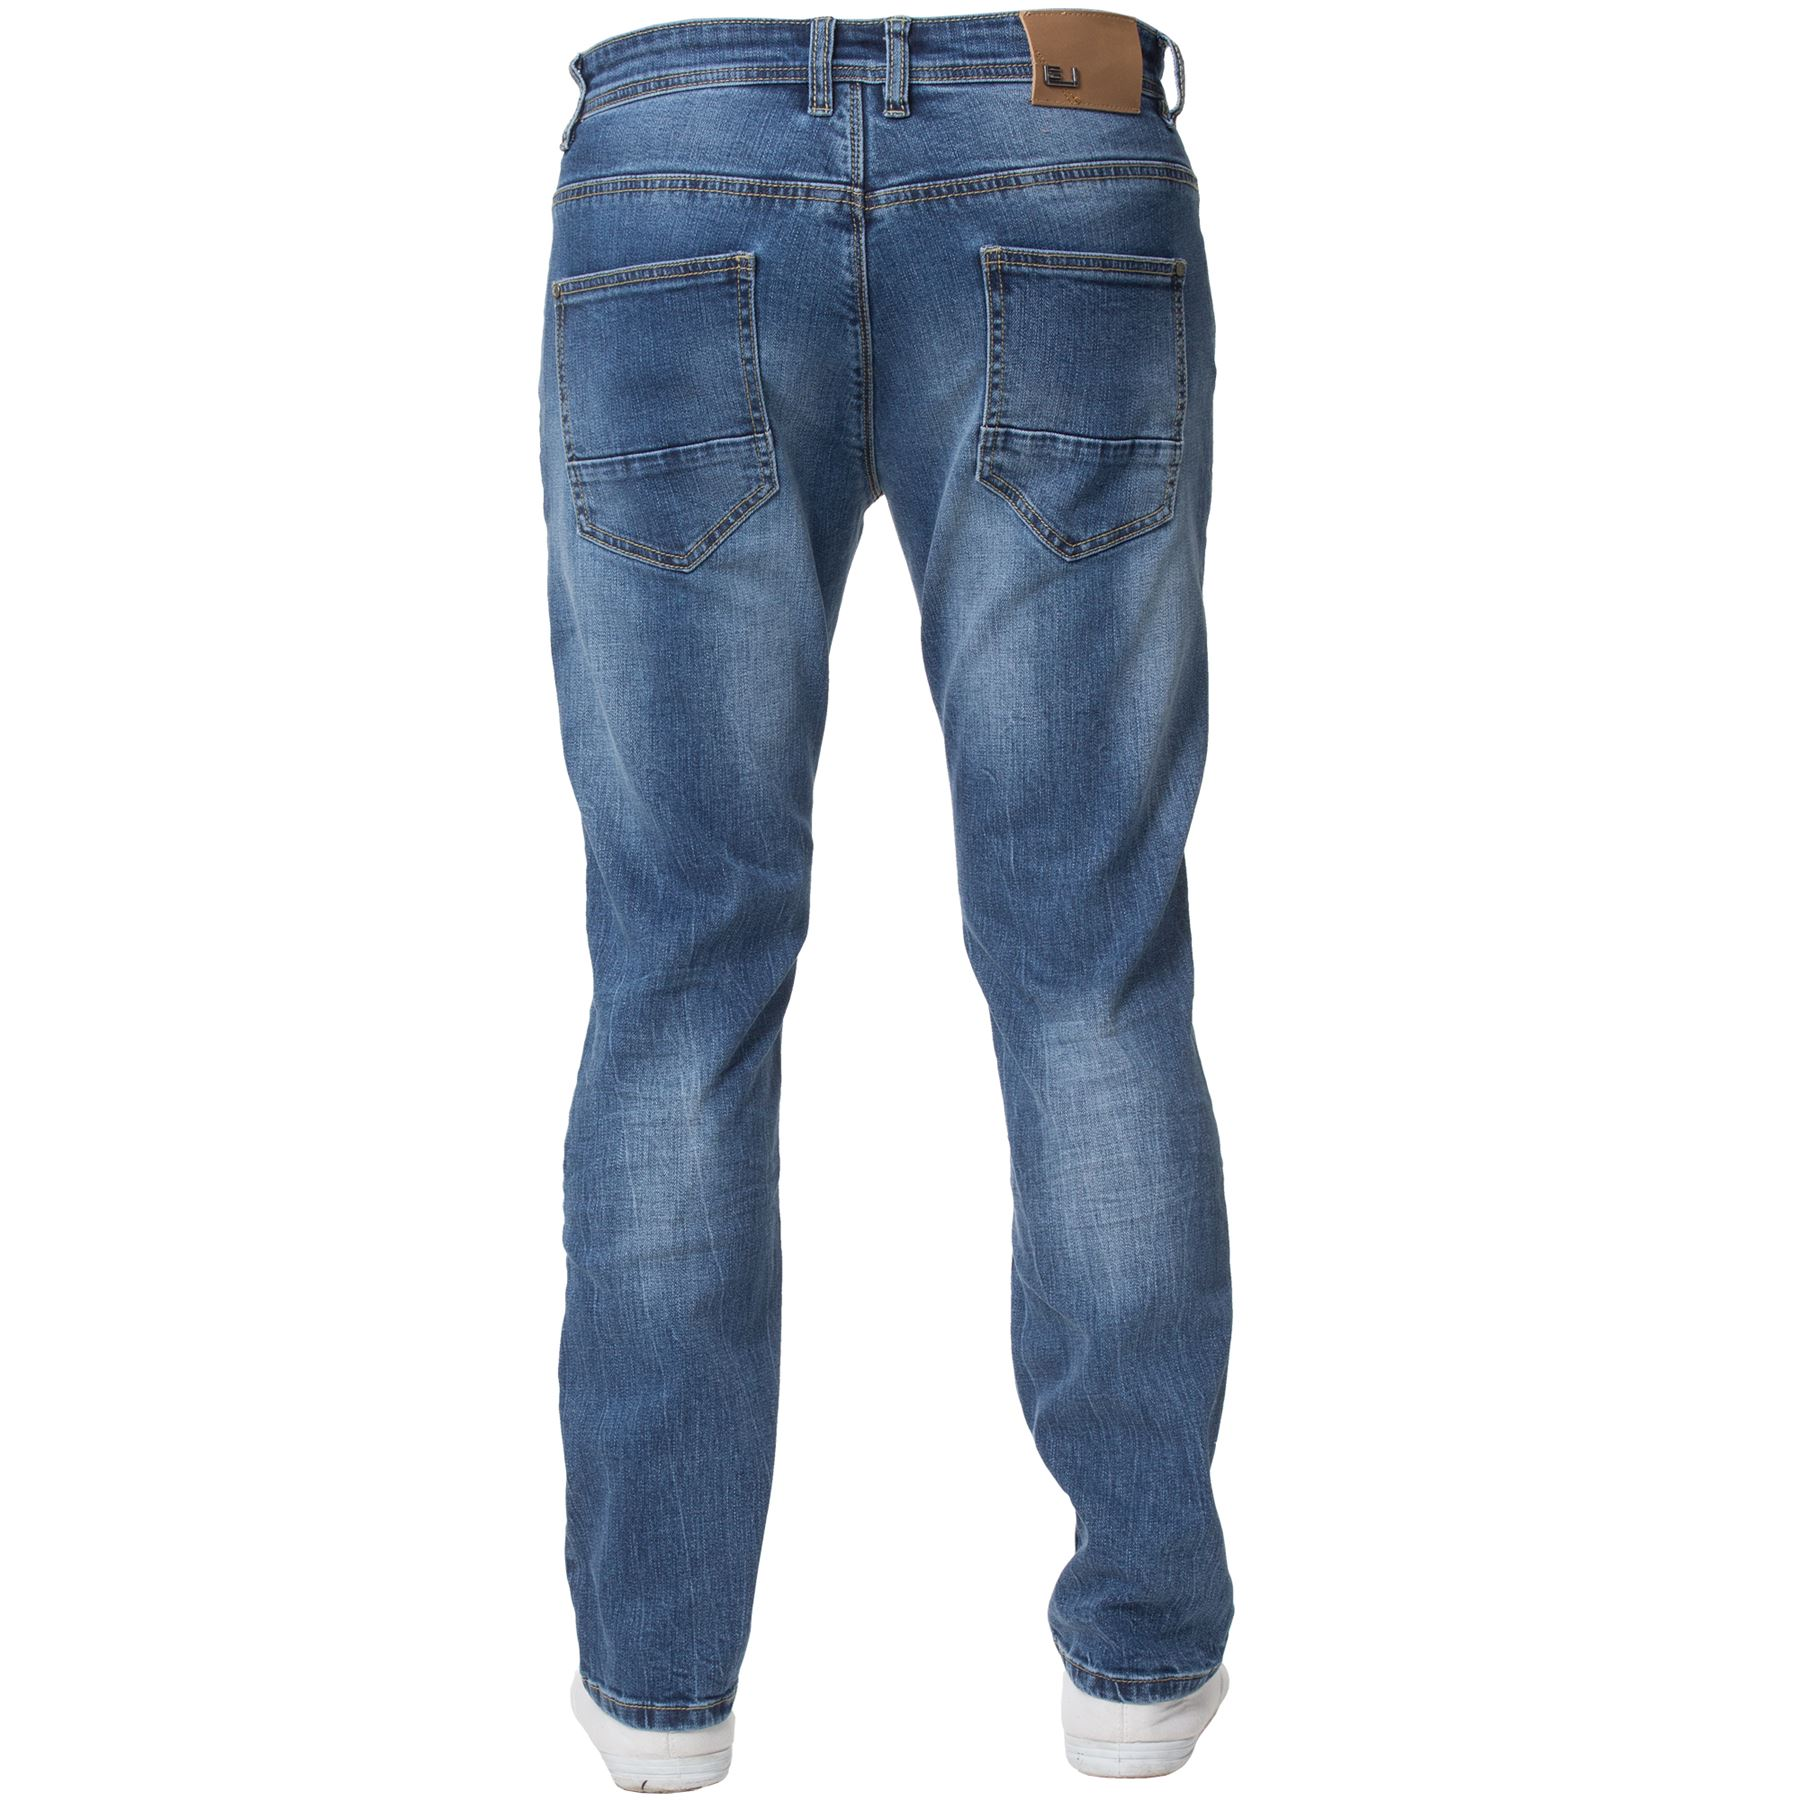 Eto-Designer-Mens-Tapered-Jeans-Slim-Fit-Stretch-Denim-Trouser-Pants-All-Waists thumbnail 6